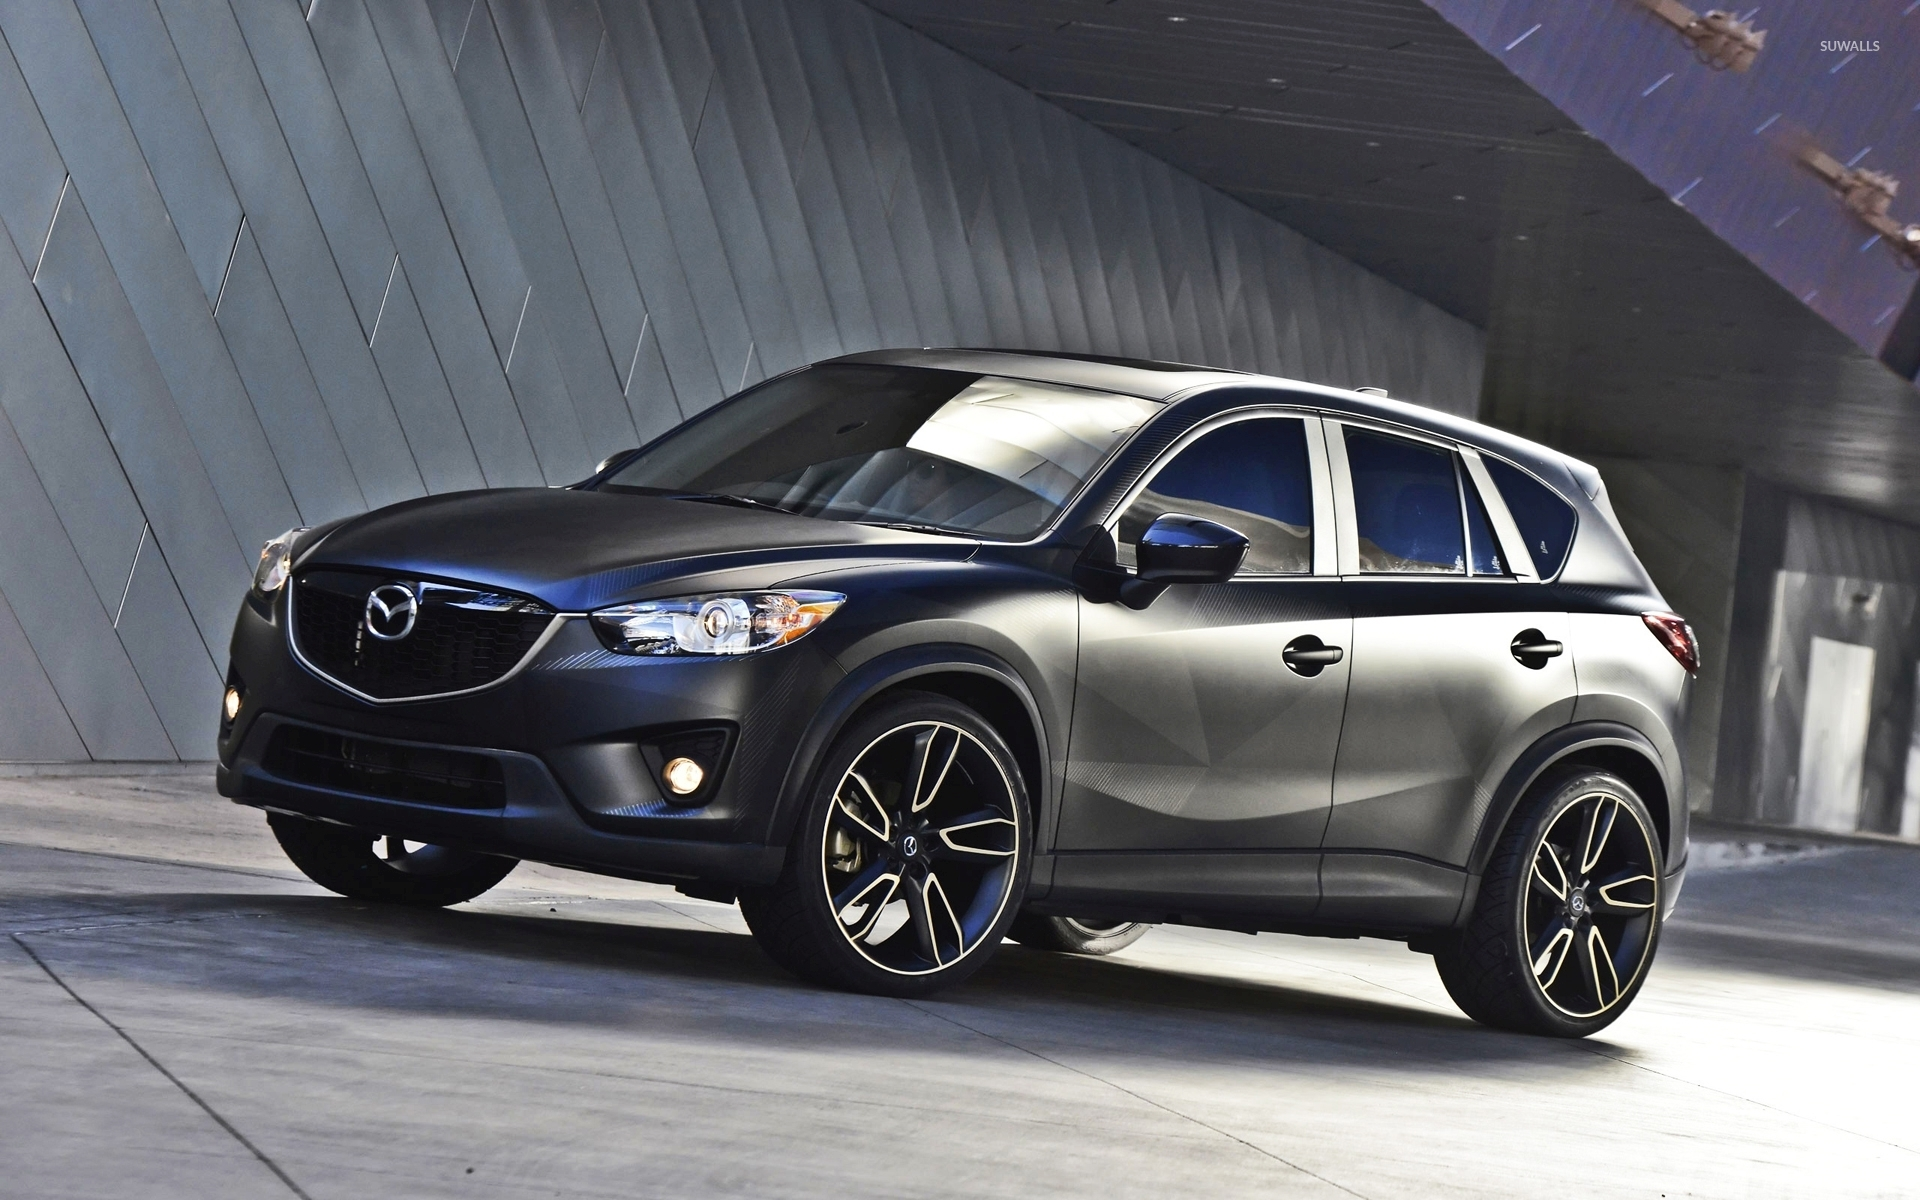 1920x1200 - Mazda CX-5 Wallpapers 13